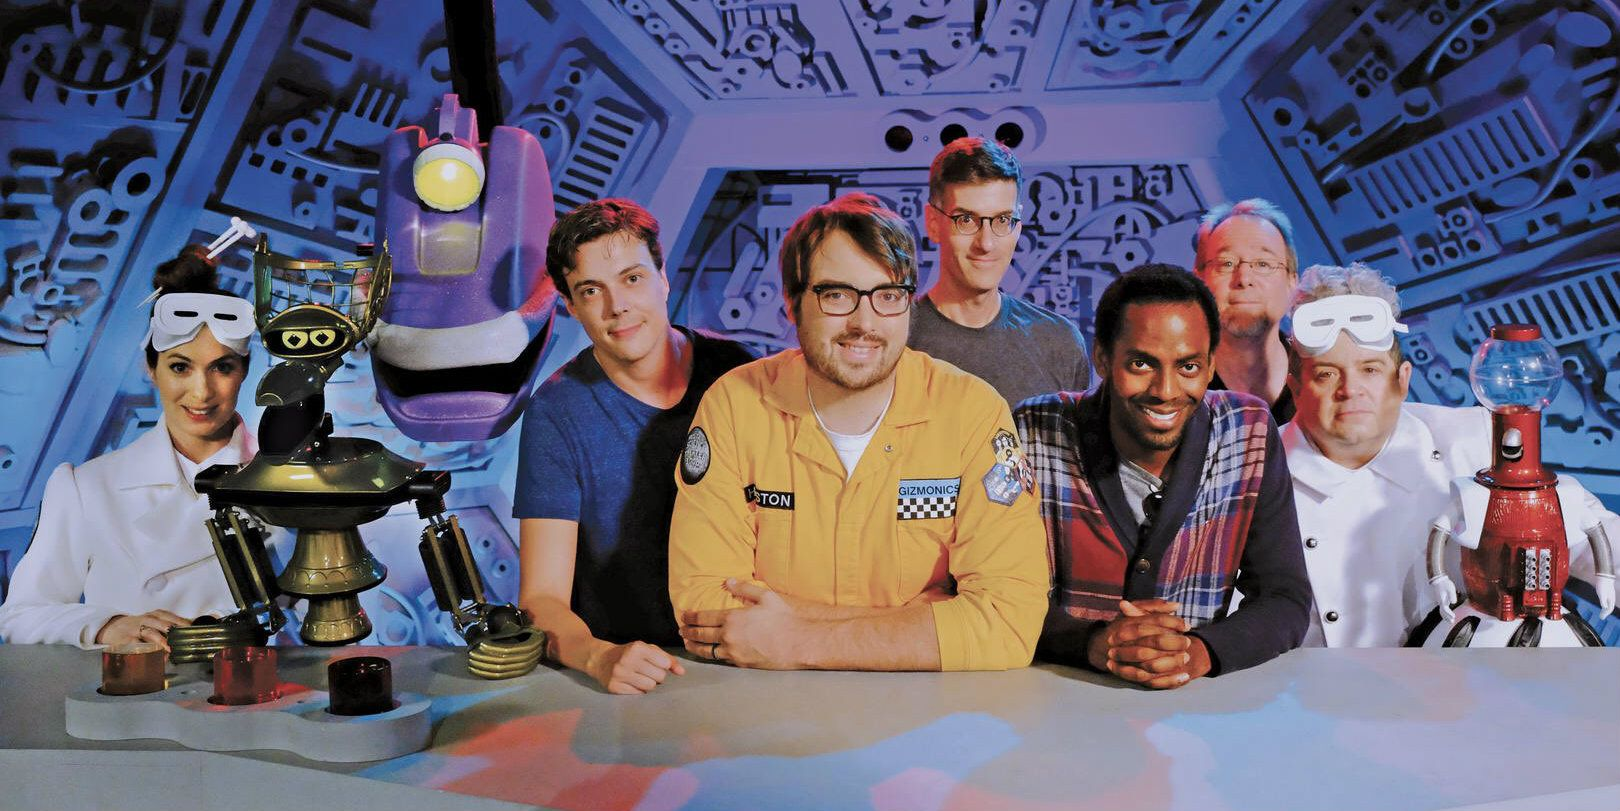 mystery science theater 3000 wikiquote - HD4896×2792